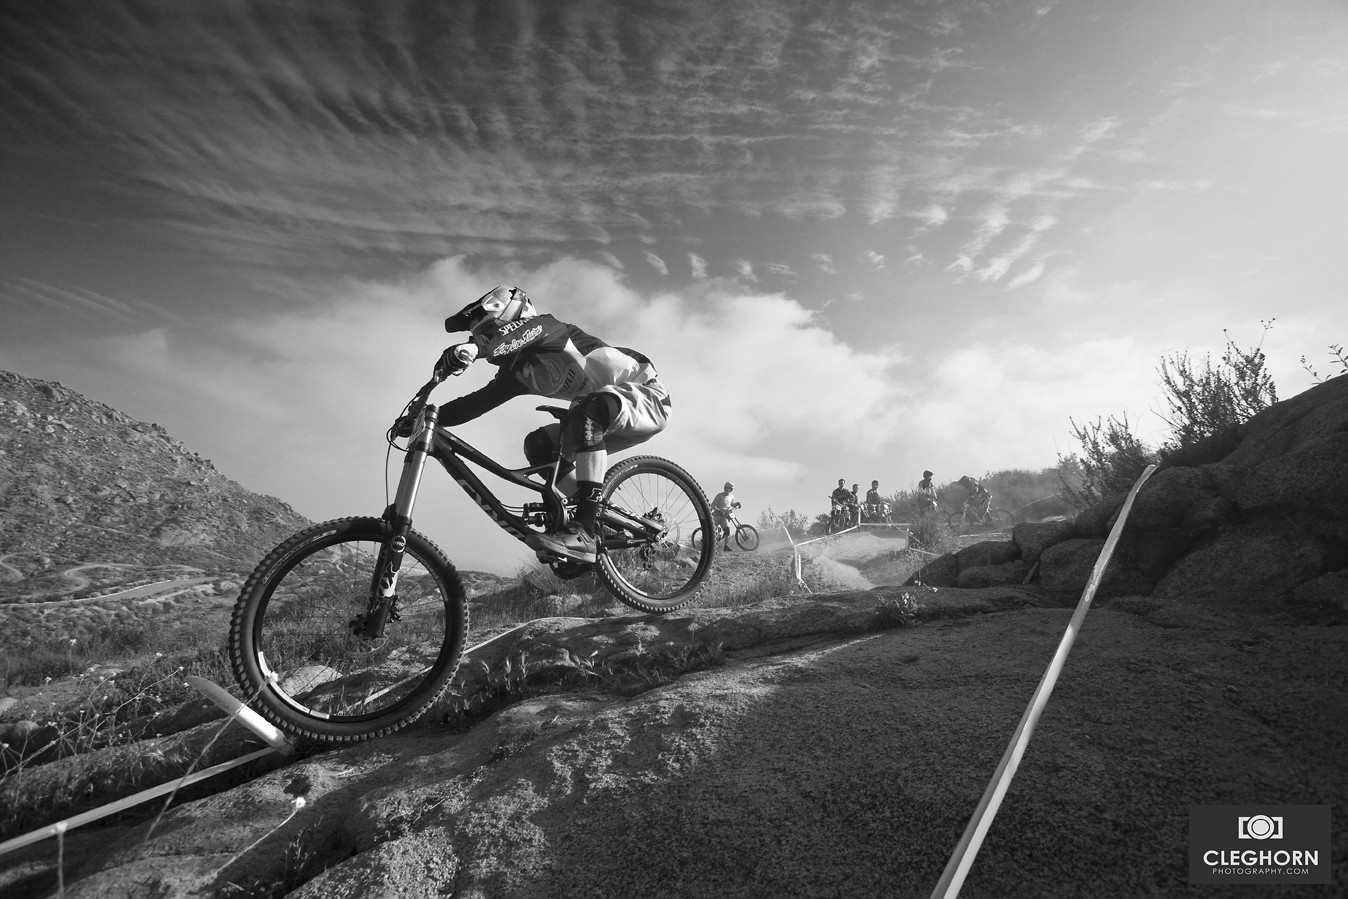 Aaron Gwin - Cleghorn Photography - Mountain Biking Pictures - Vital MTB